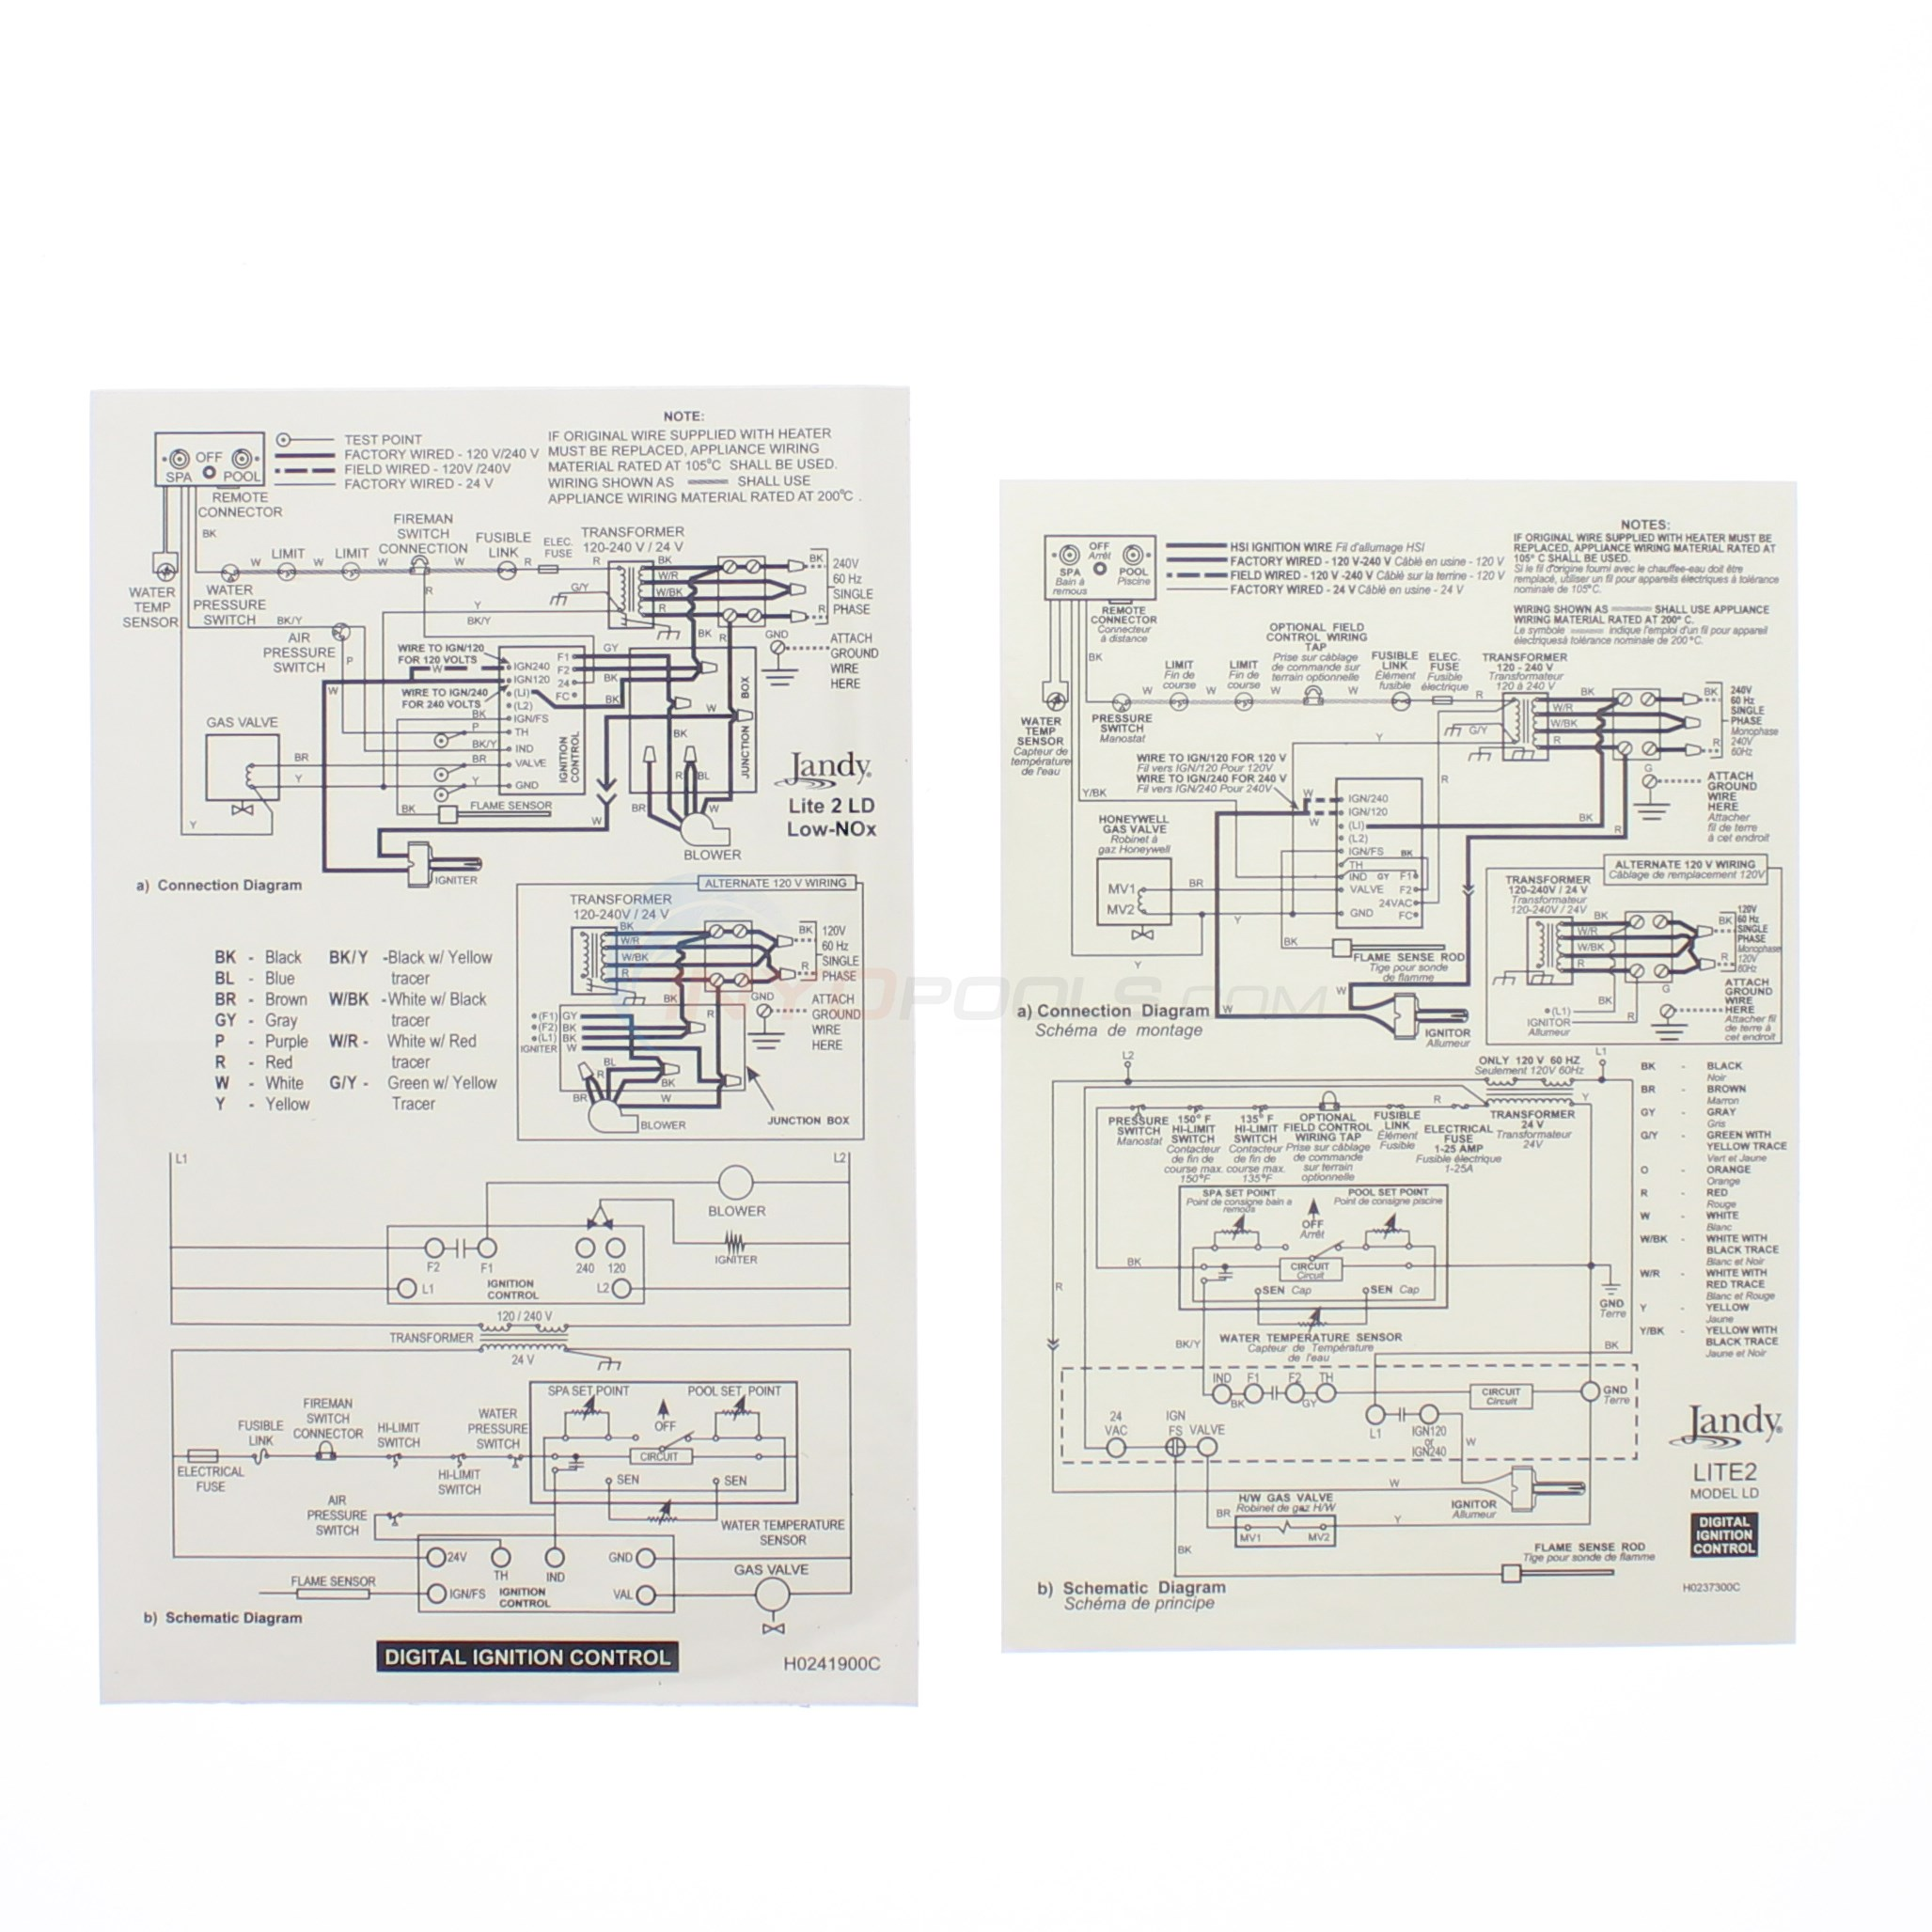 zodiac 6200 0301?format=jpg&scale=both&anchor=middlecenter&autorotate=true&mode=pad&width=650&height=650 zodiac ignition control assembly (r0408100) inyopools com fenwal ignition module wiring diagram at mr168.co